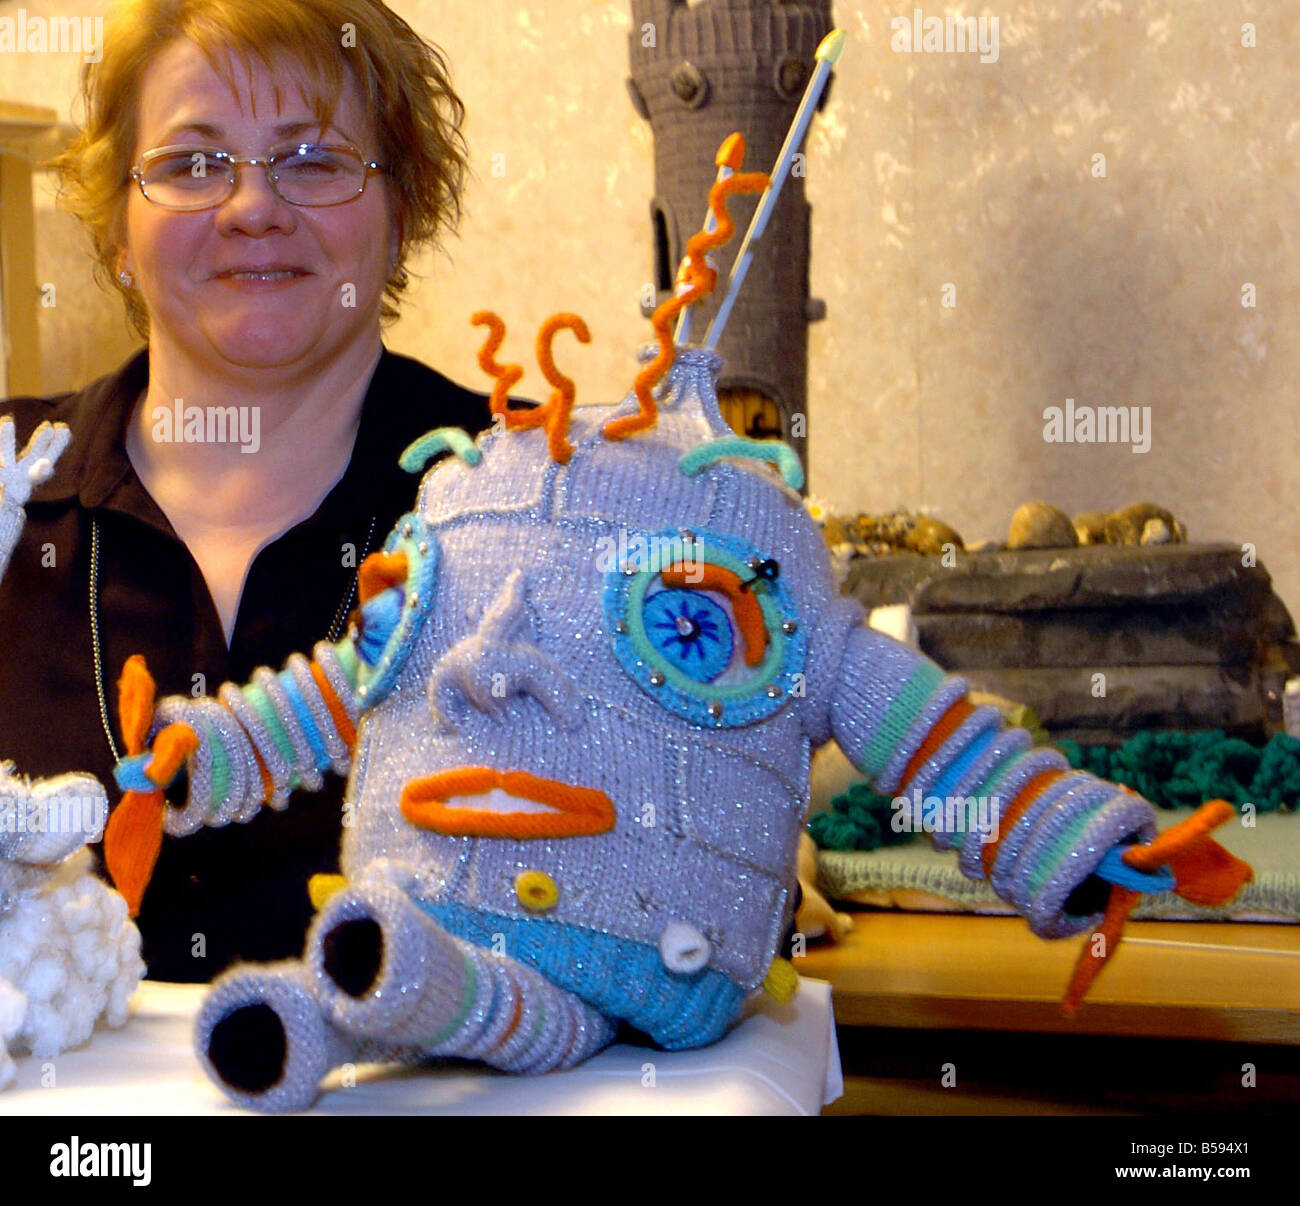 Susan Docherty childrens book author 2004 the woman behind the world s first knitted books The Sweaterheads books - Stock Image